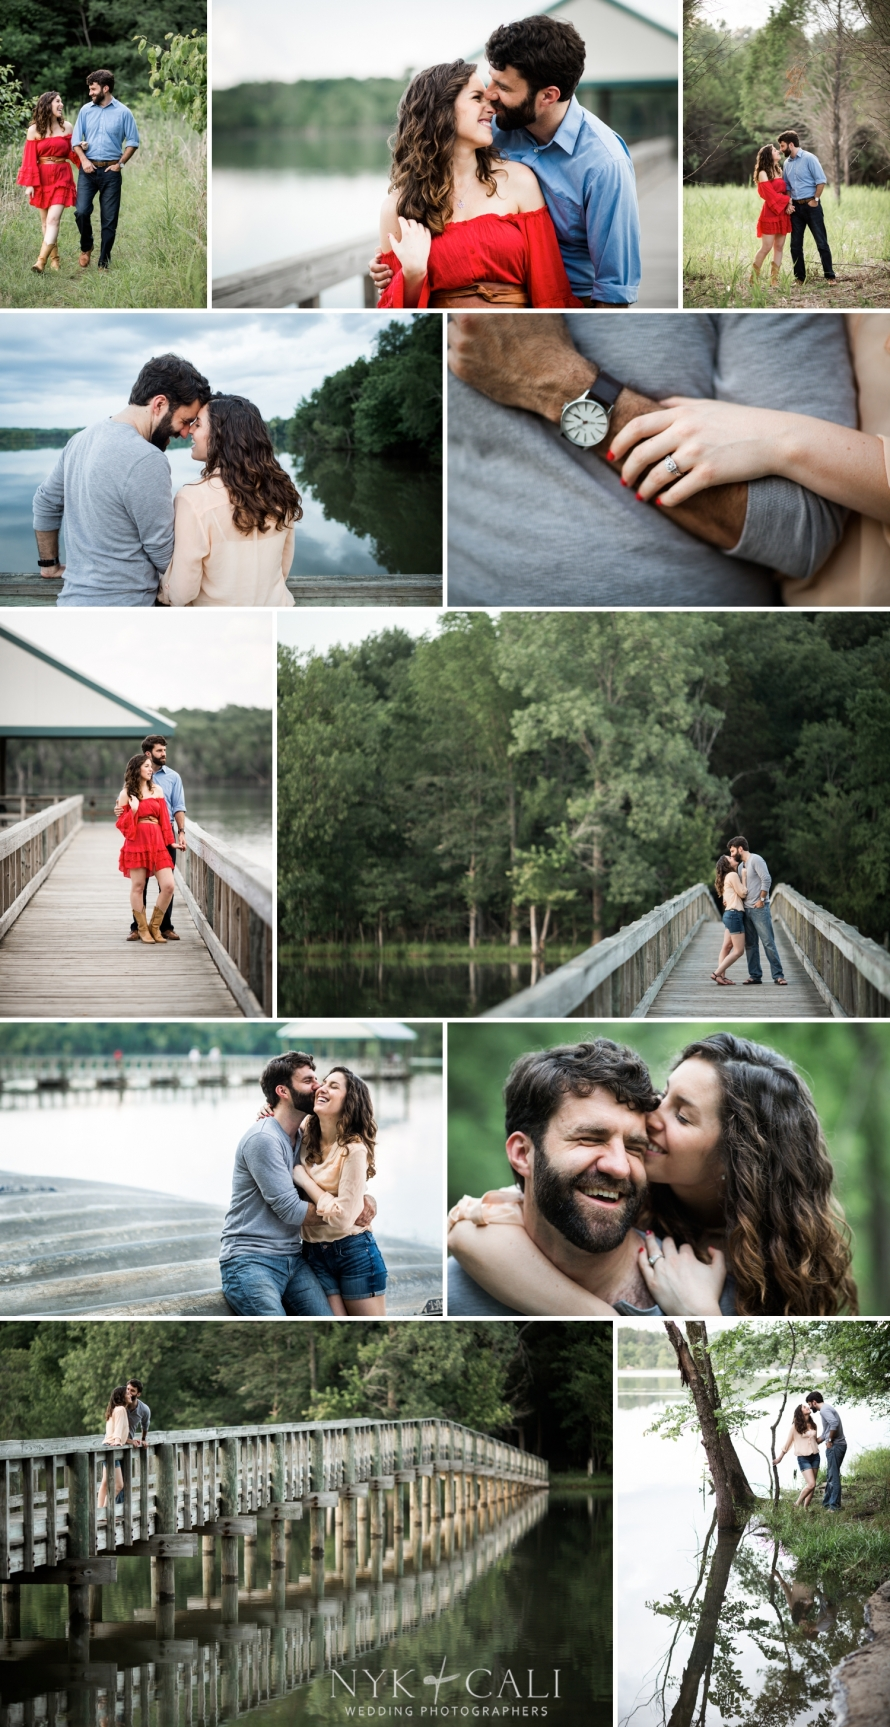 Long-Hunter-Engagement-Session-Photographer-Nyk-Cali